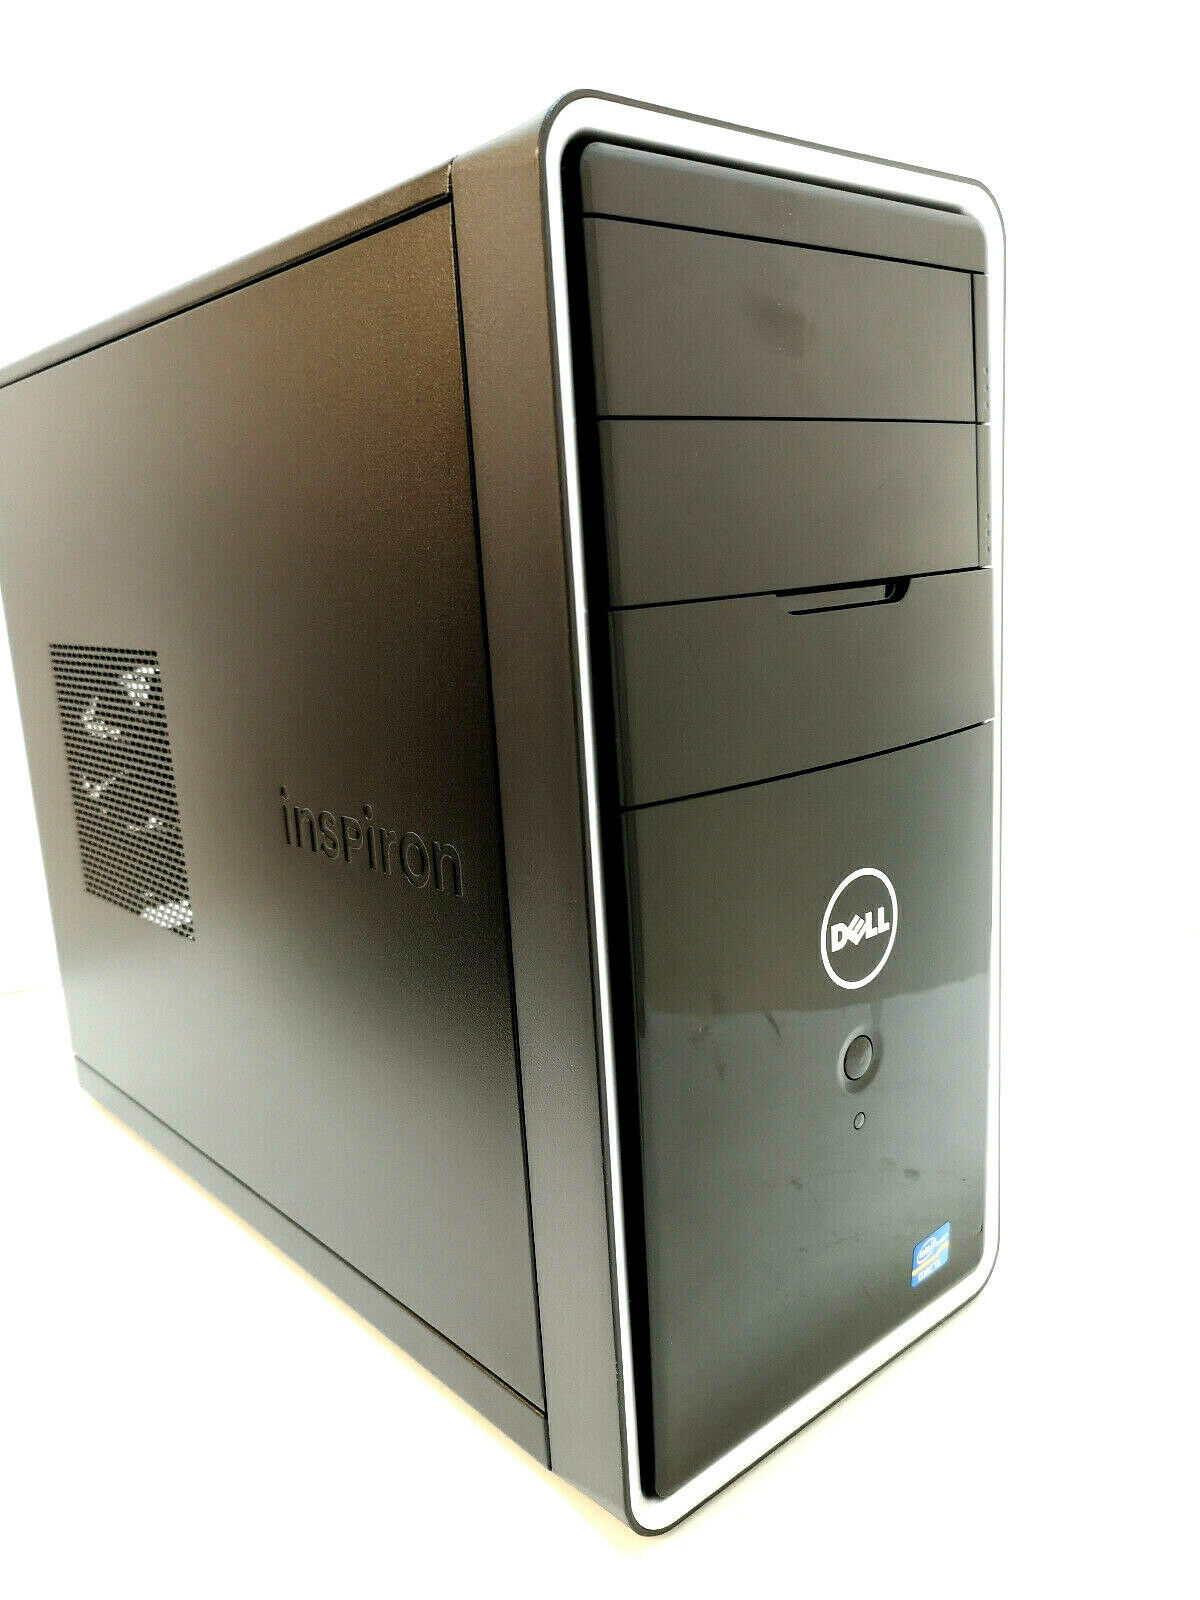 Dell Inspiron 660 No 1